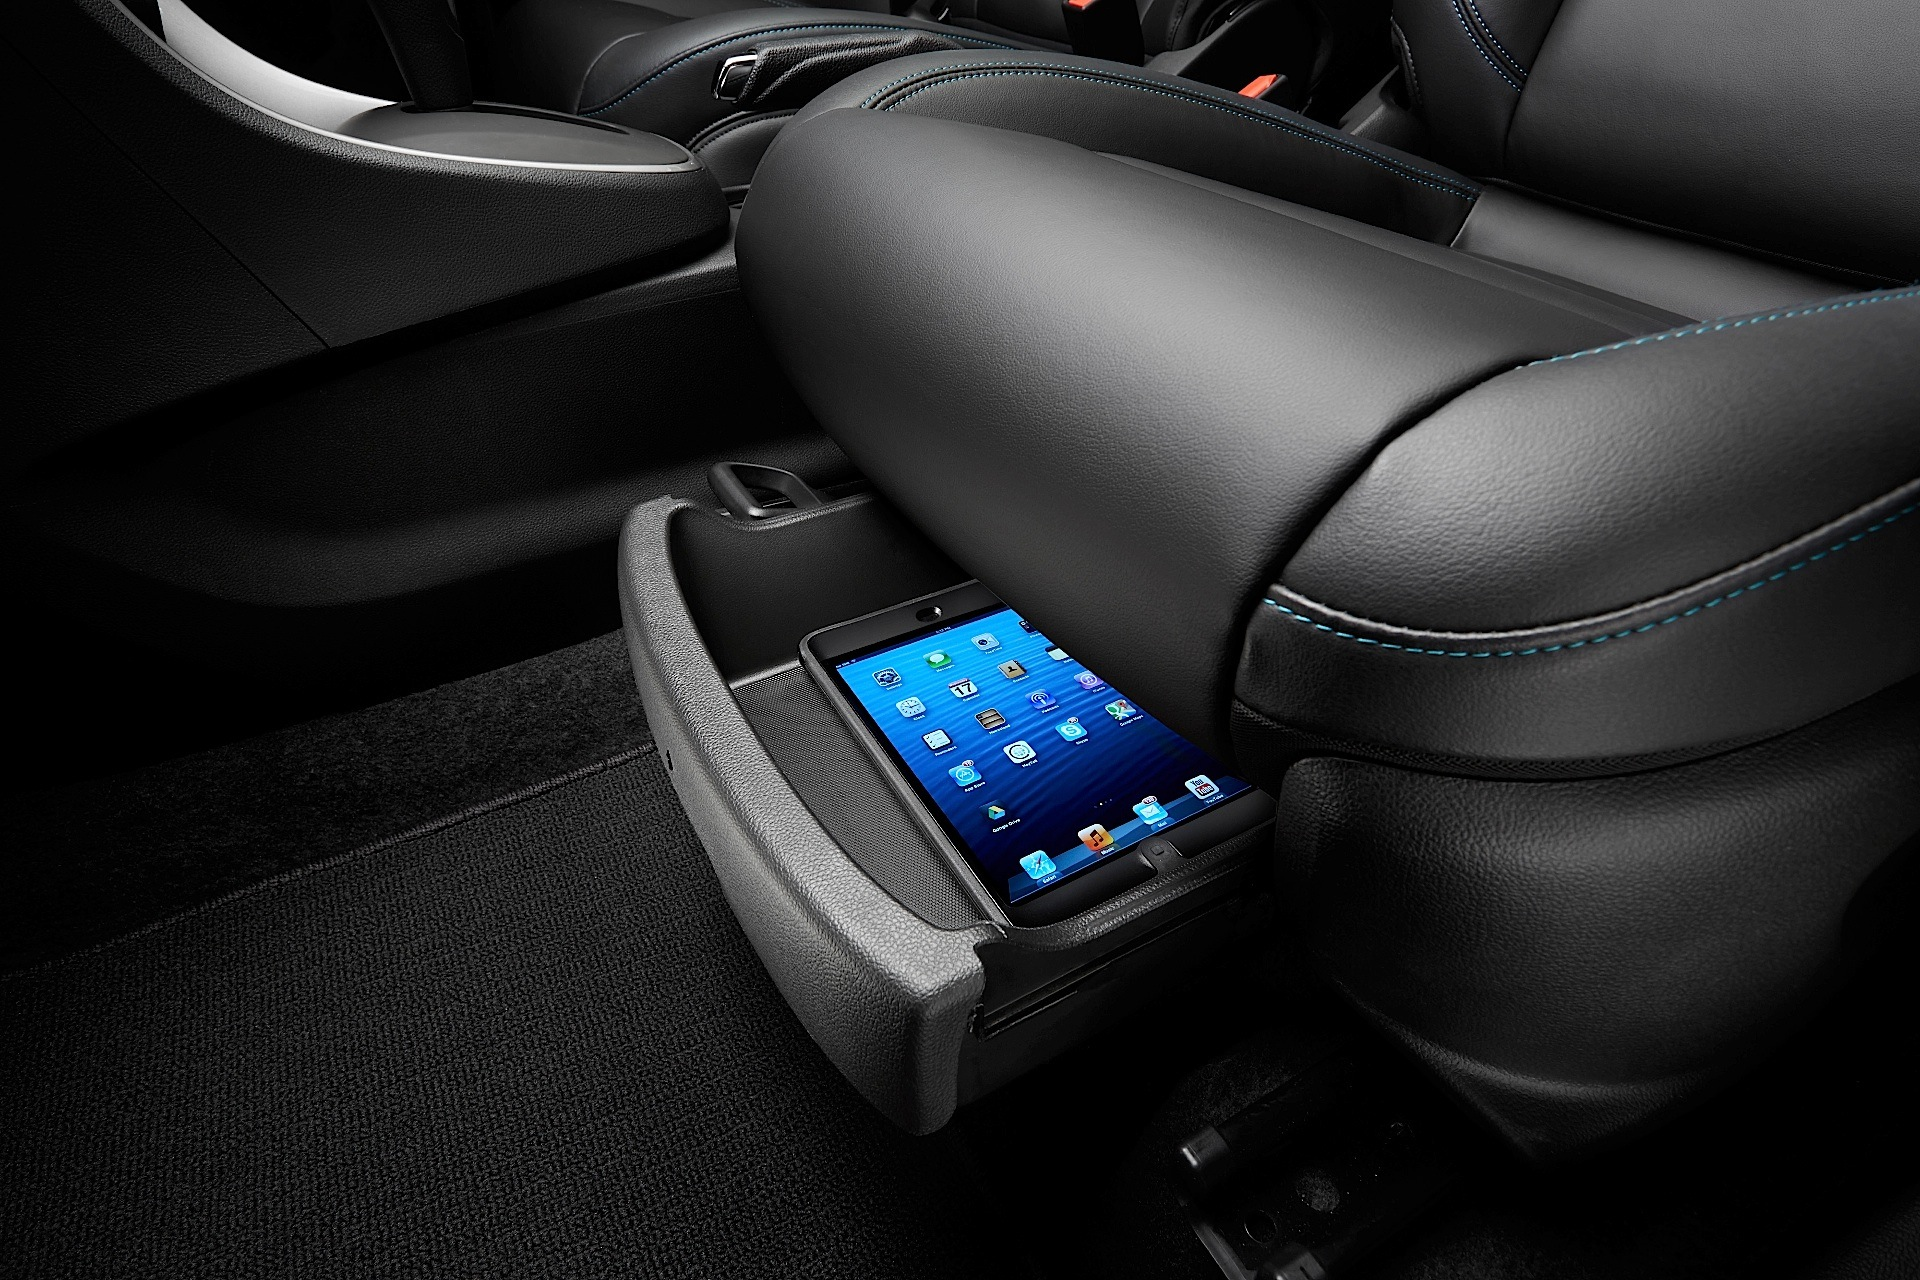 chevrolet trax hp with Holden Trax 2013 on New Jeep Renegade Smallest Jeep Photos Details Video in addition Trax furthermore 100459872 2013 Chevrolet Equinox Fwd 4 Door Lt W 2lt Rear Exterior View together with 2017 Honda Hrv Prepared To Enter The North American Market besides Chevrolet Slammer Concept Lt376535 Crate Engine.